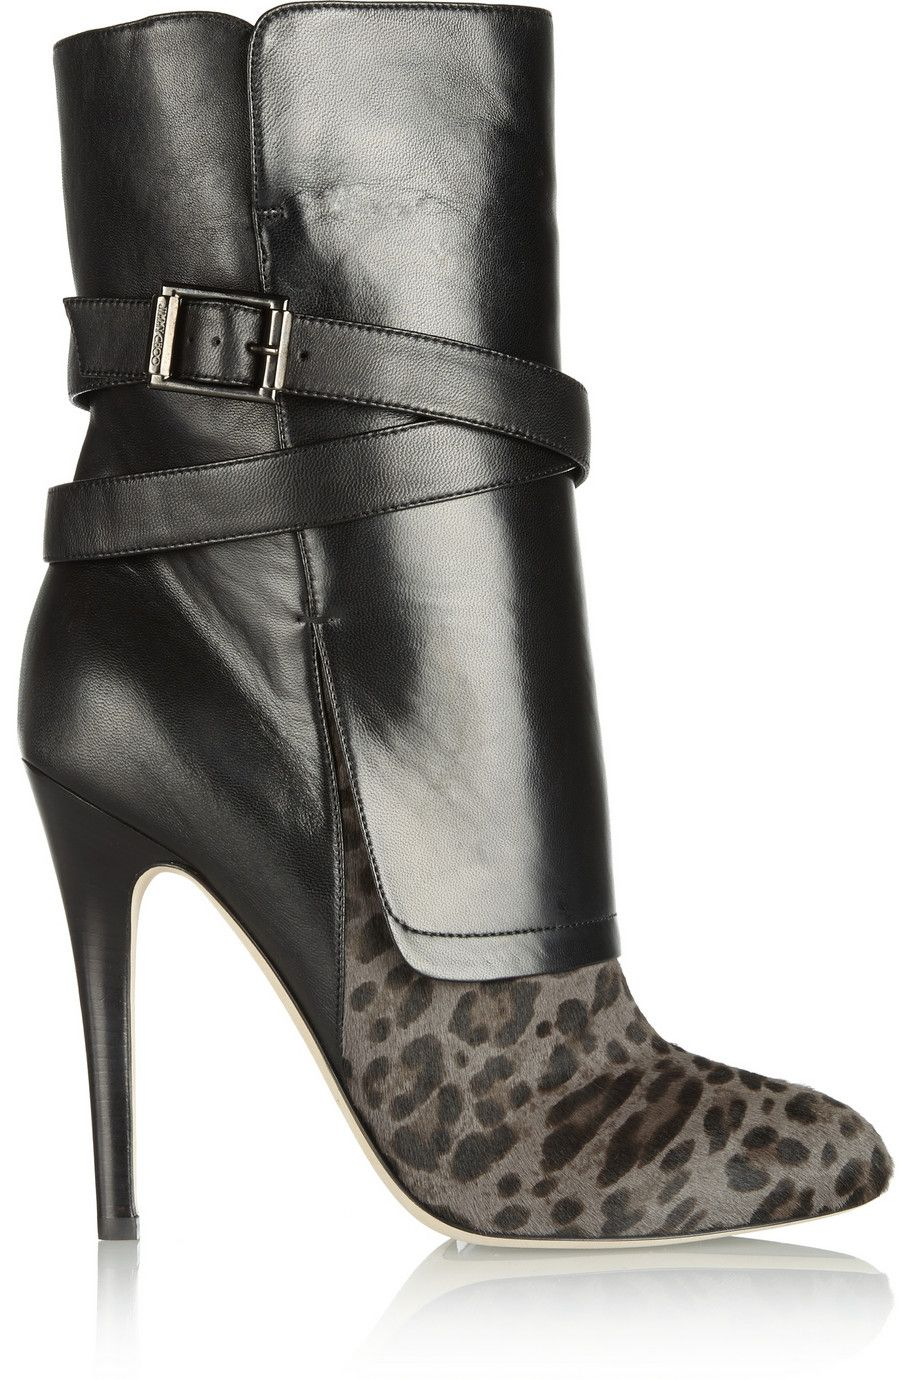 0539a915c2c2 JIMMY CHOO Leopard-print calf hair and nappa leather ankle boots ...